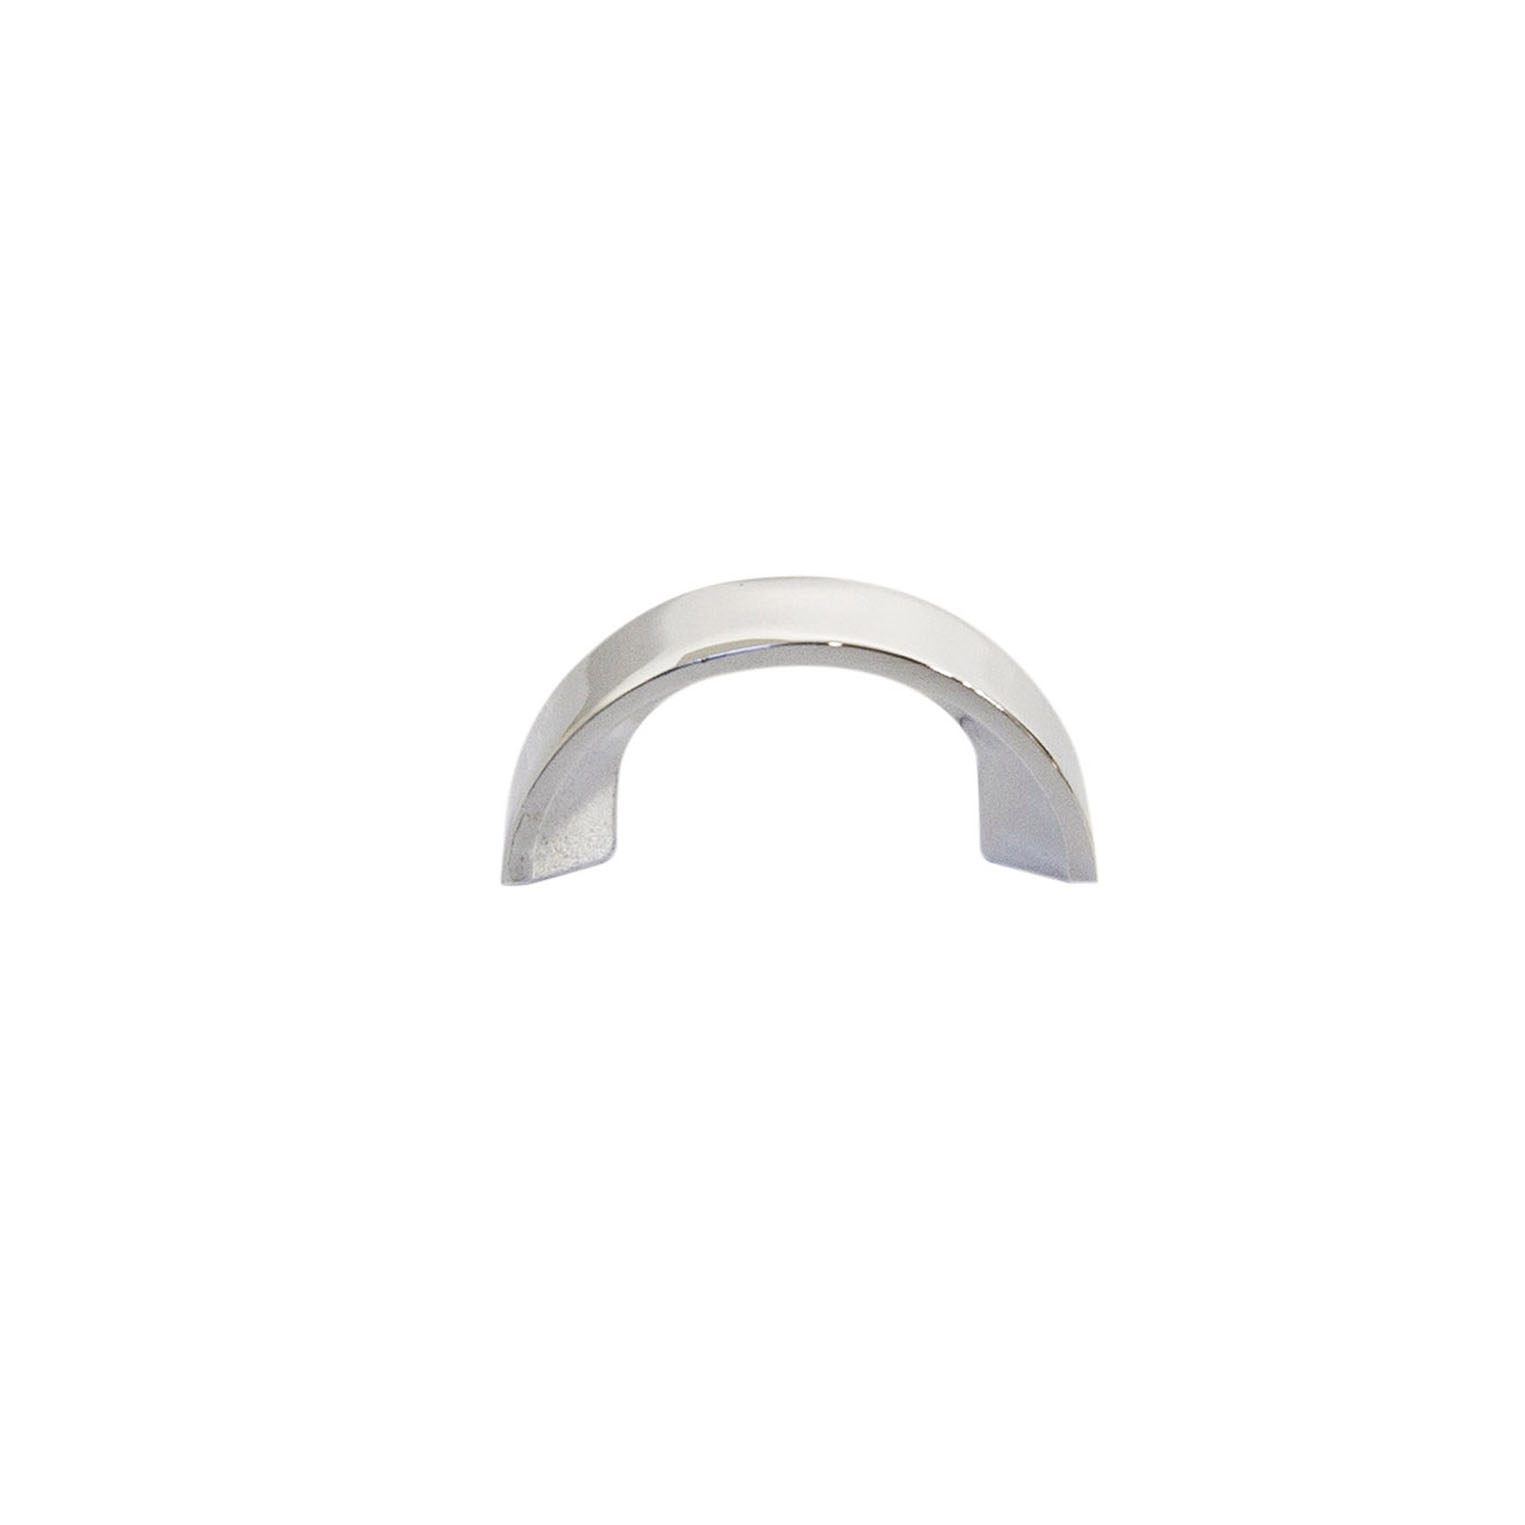 Design House Eclipse Cabinet Pull, Brushed Nickel - 205500